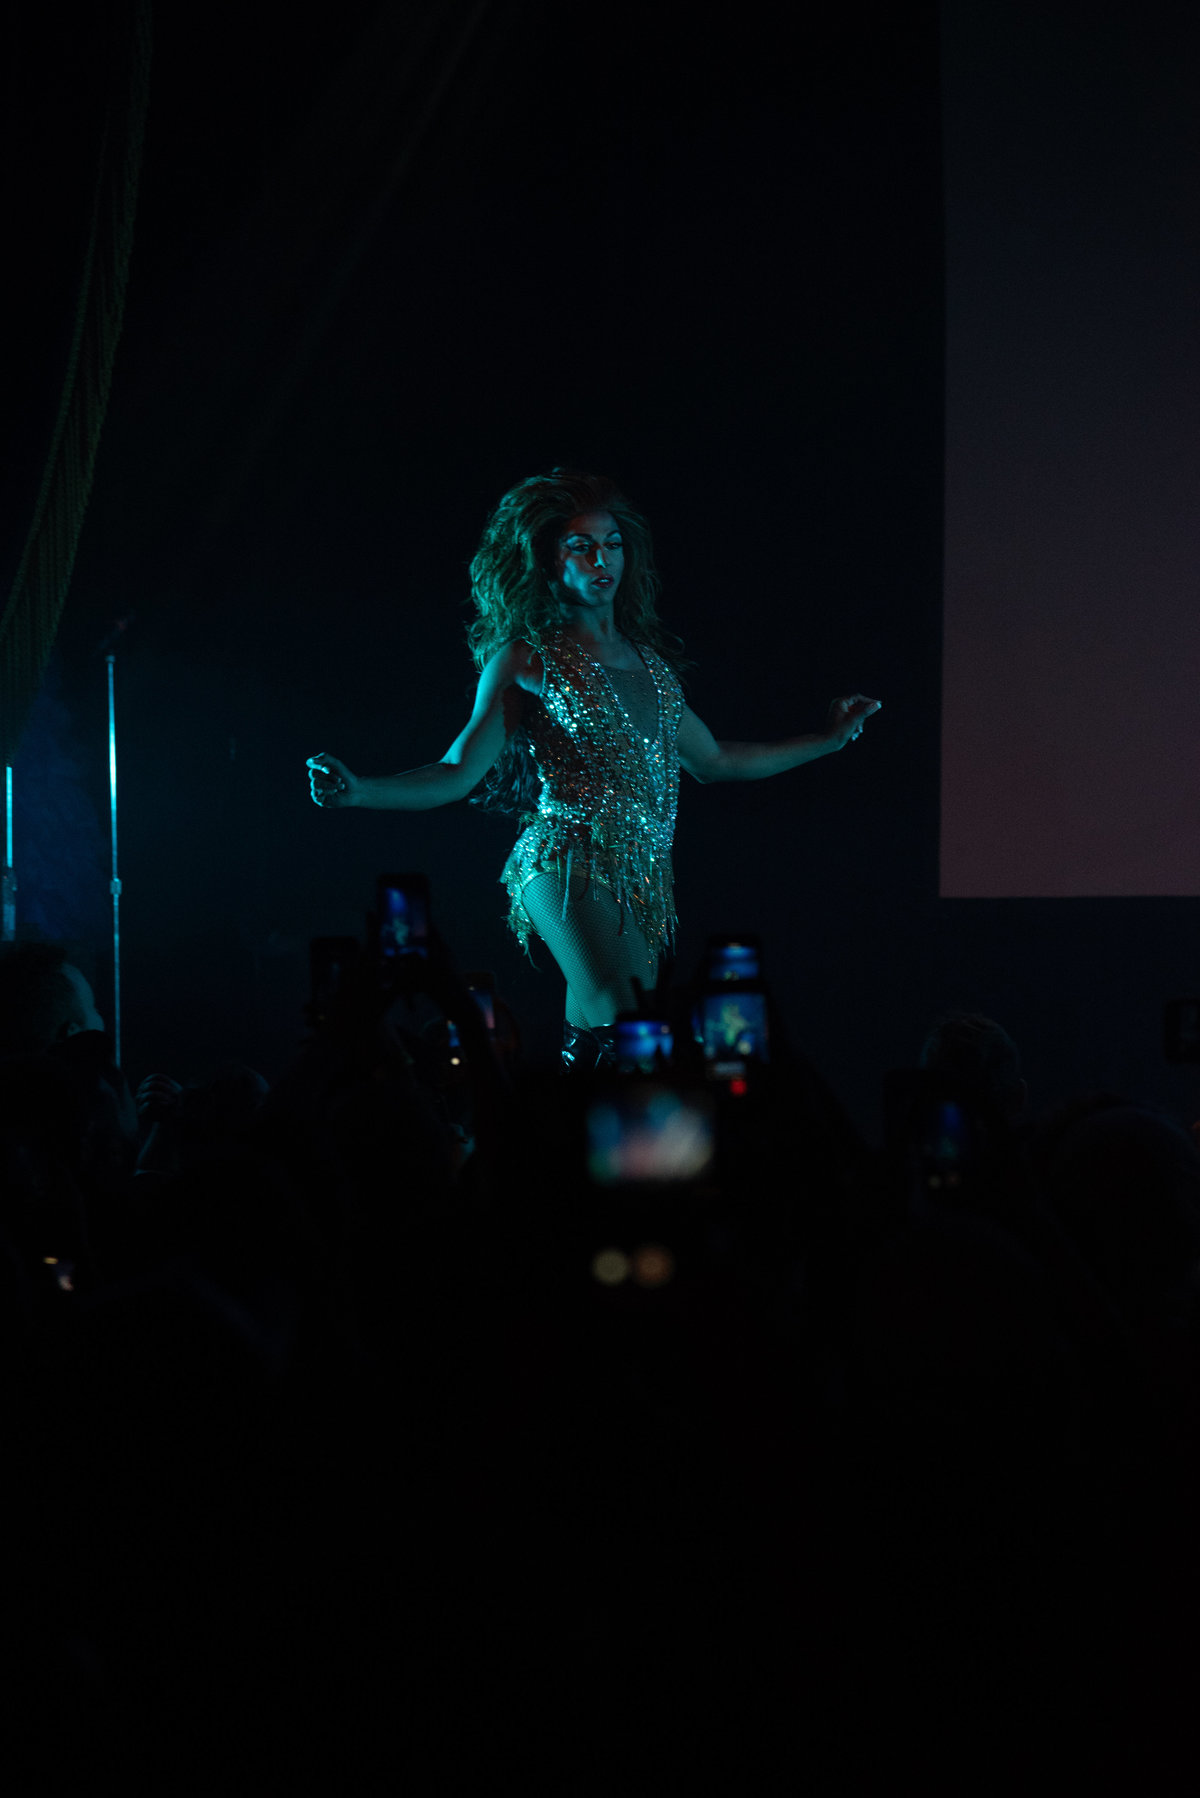 Shangela-Shook-Toronto-1